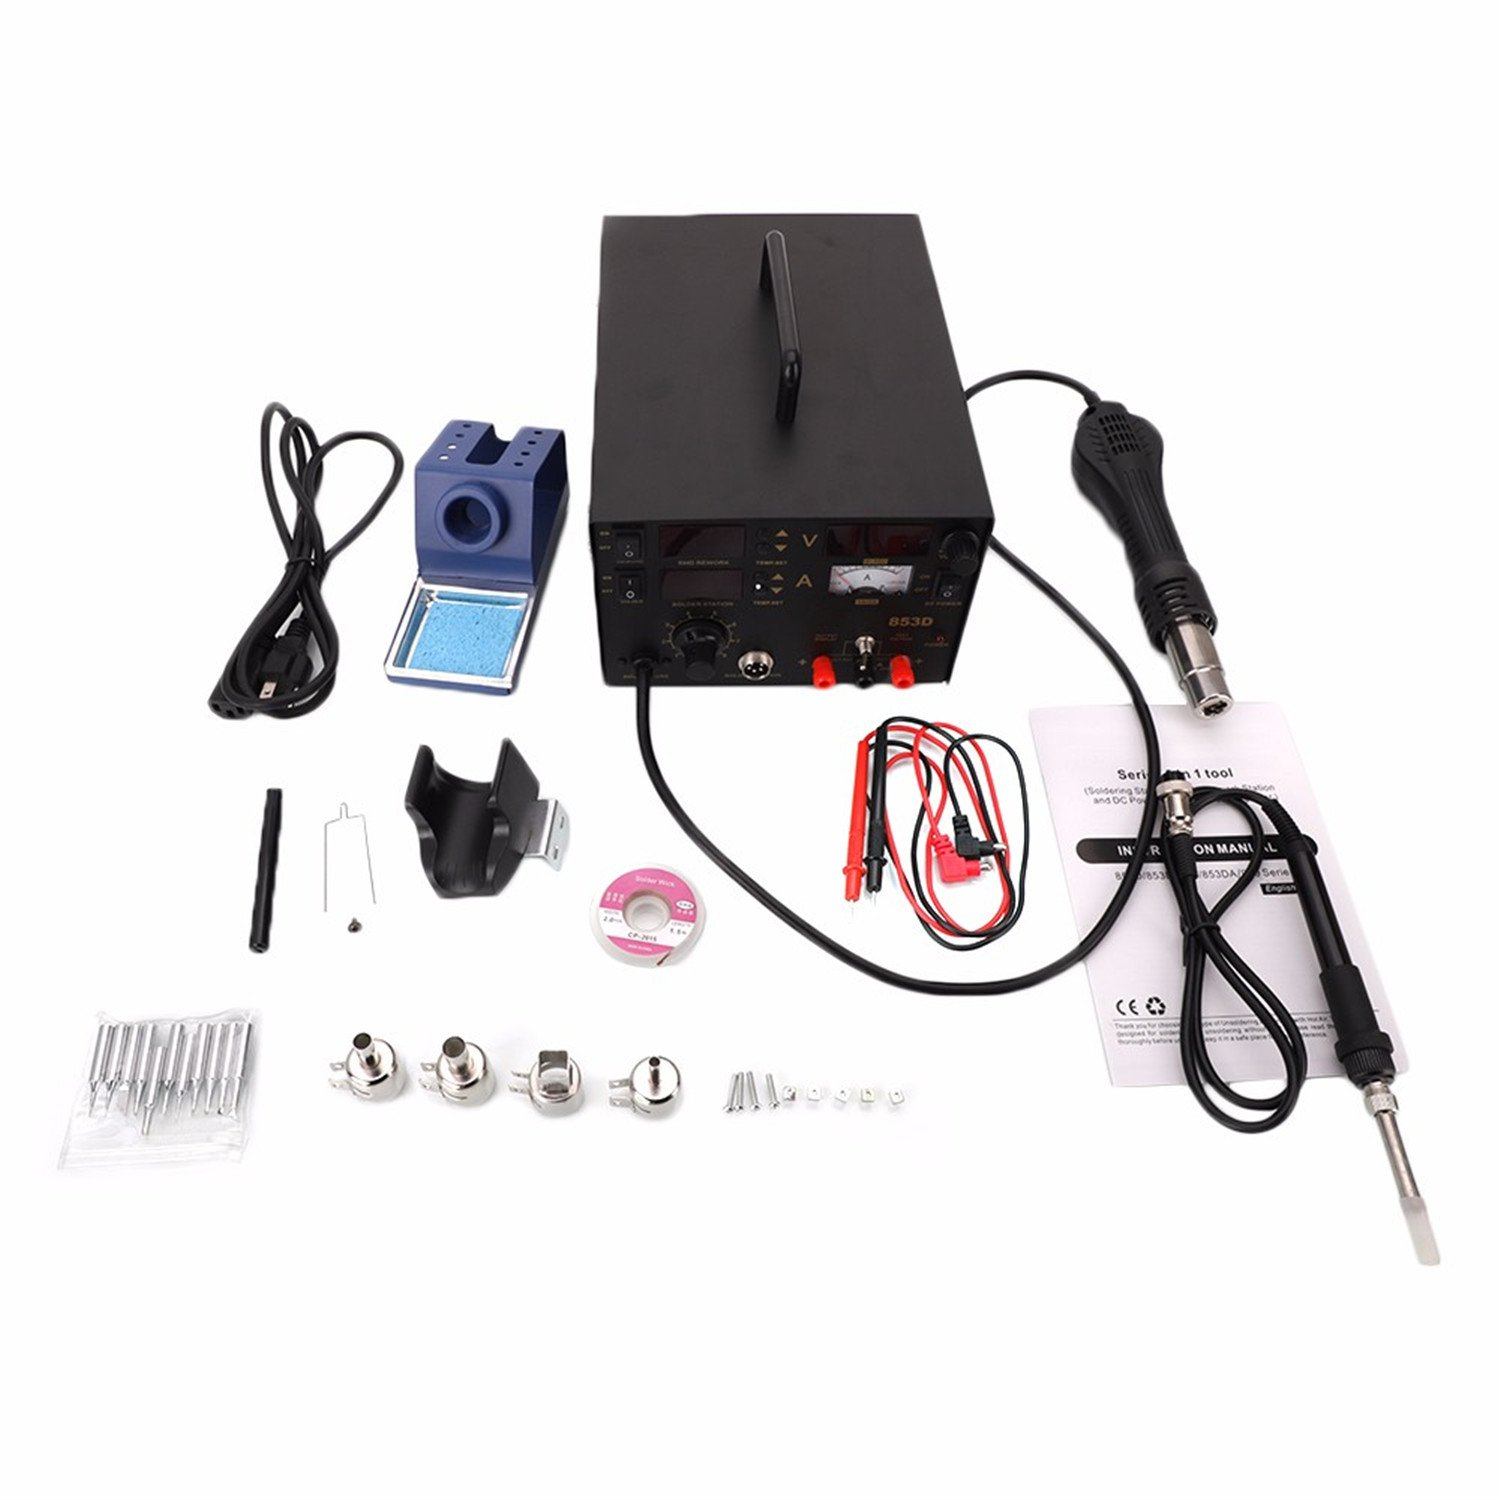 853D 3 in 1 Soldering Station & Hot Air Gun & Power Source Digital Display Constant-temperature Soldering Station with 11pcs Solder Tips & 1pc Solder Wick & 1pc IC Extractor US Plug Black